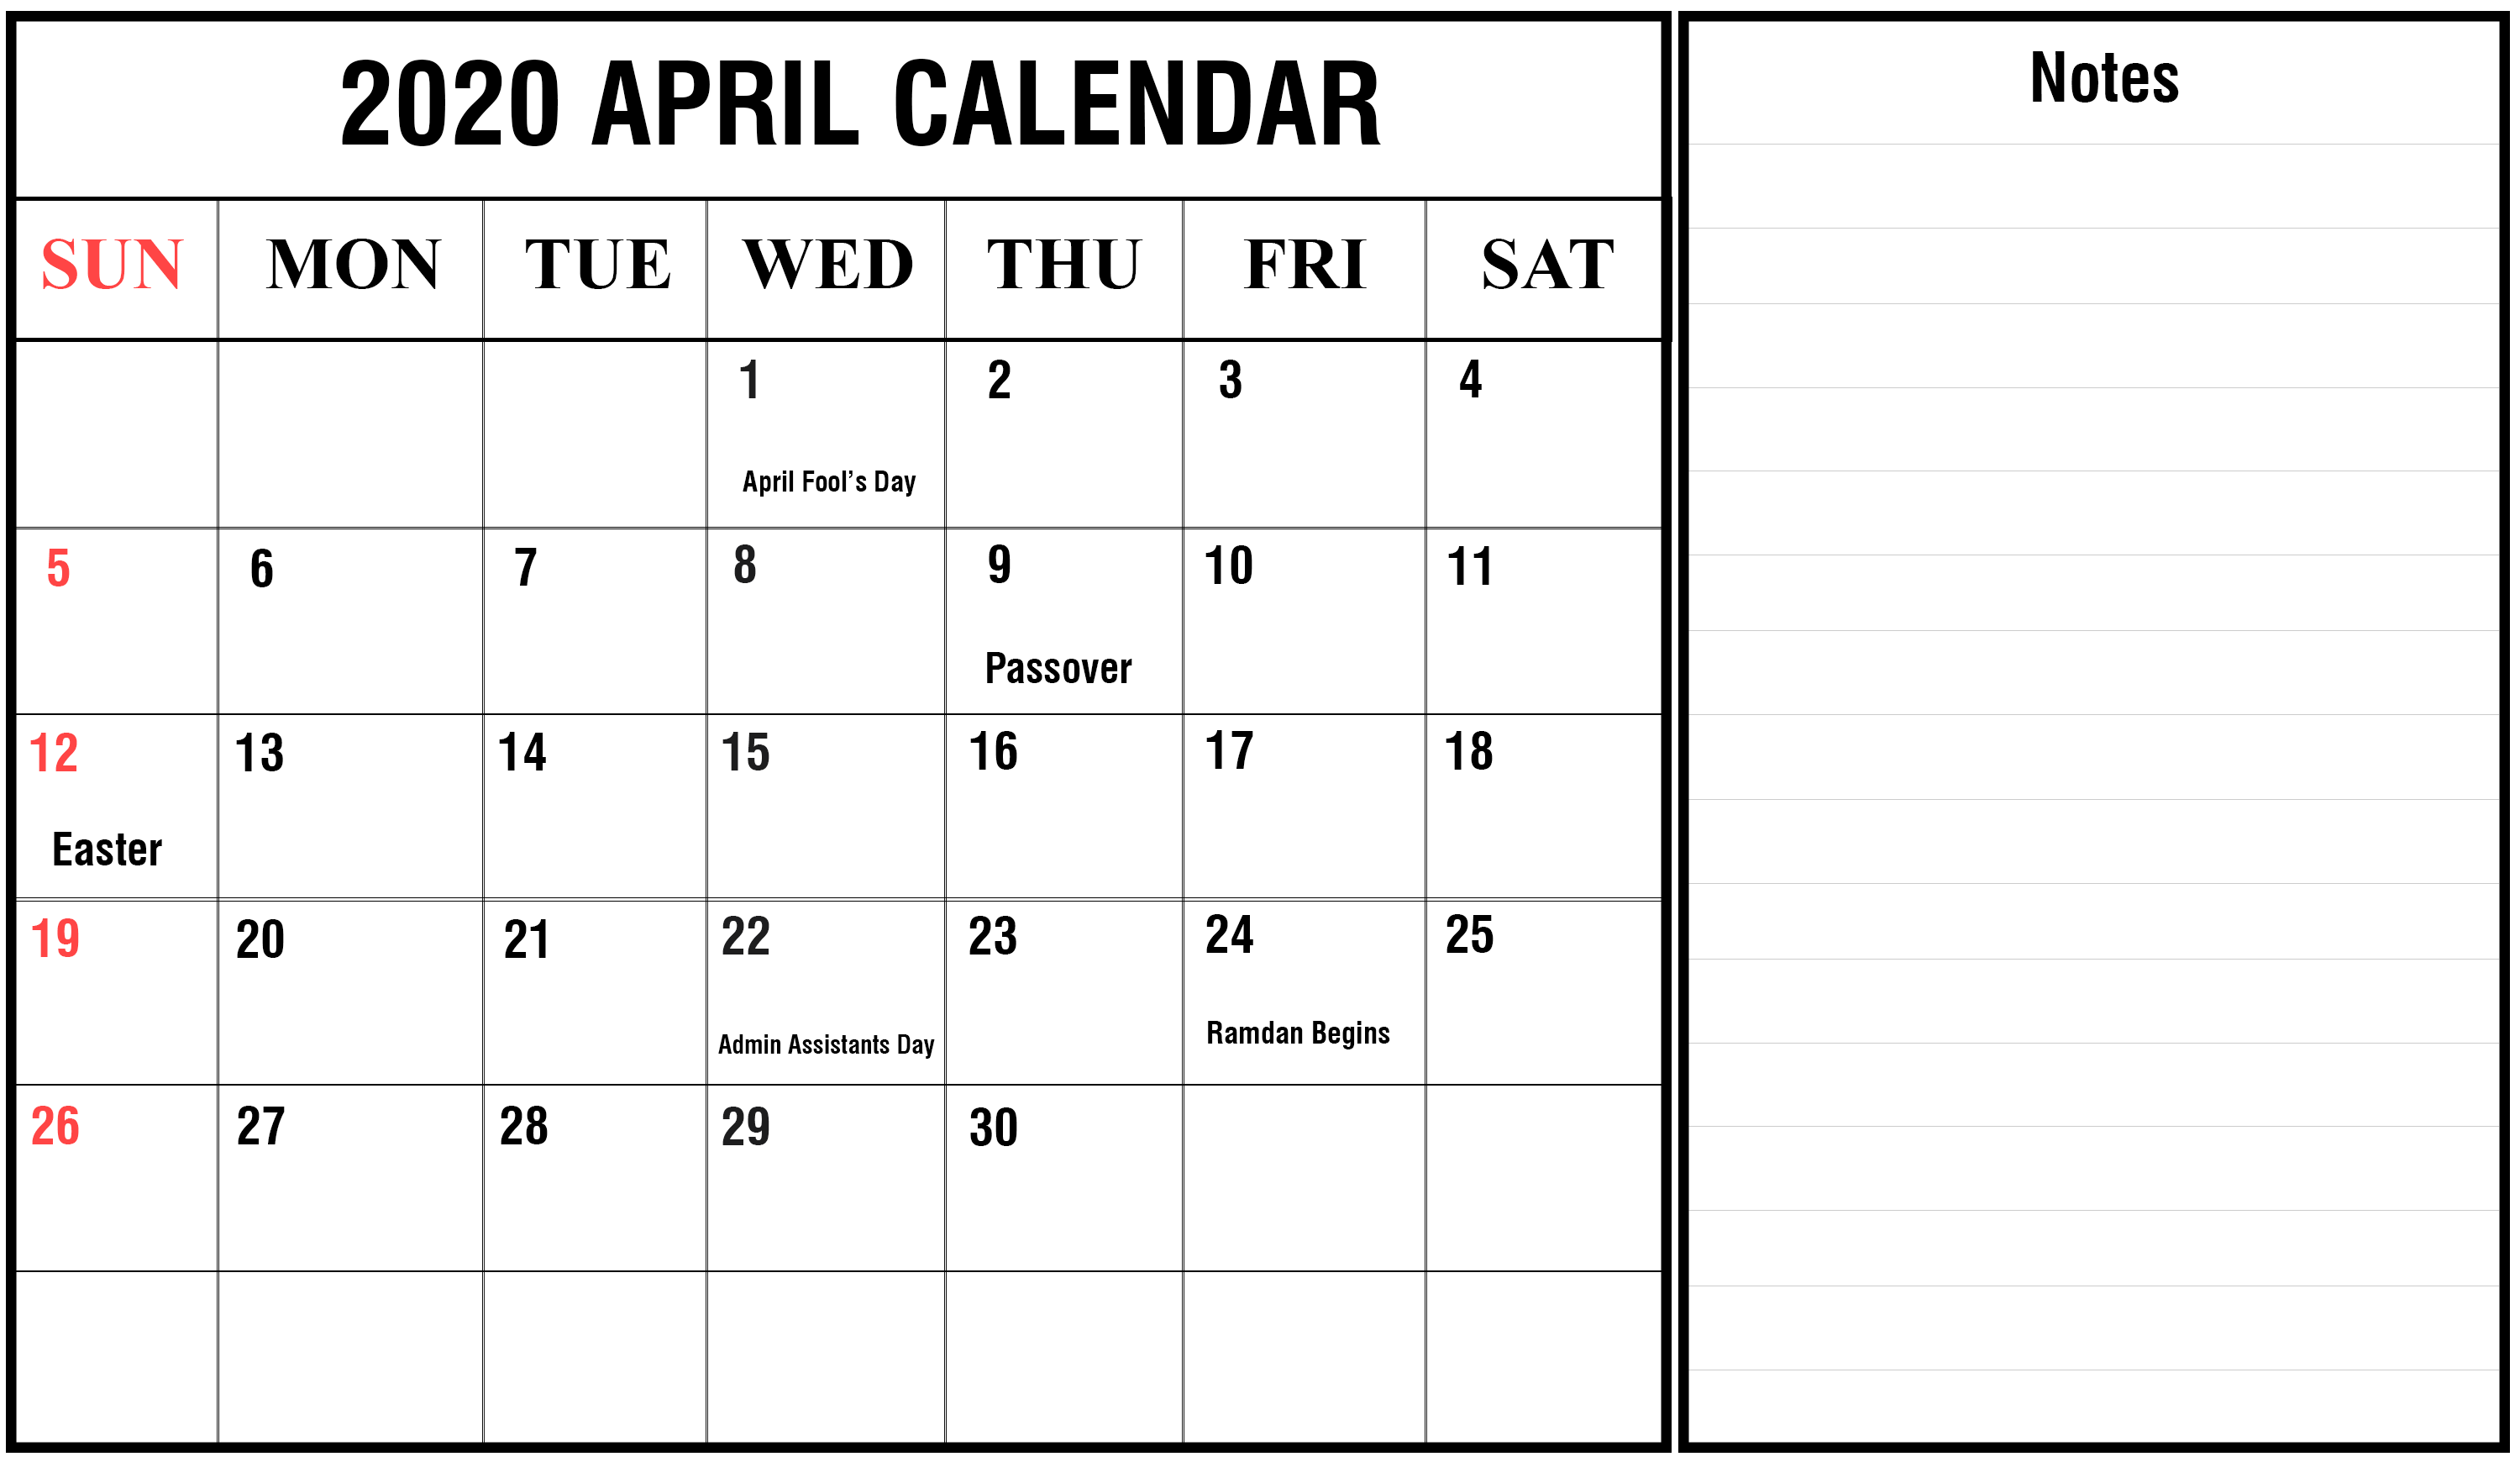 Editable April 2020 Calendar Printable Template With Holidays 3000x1740